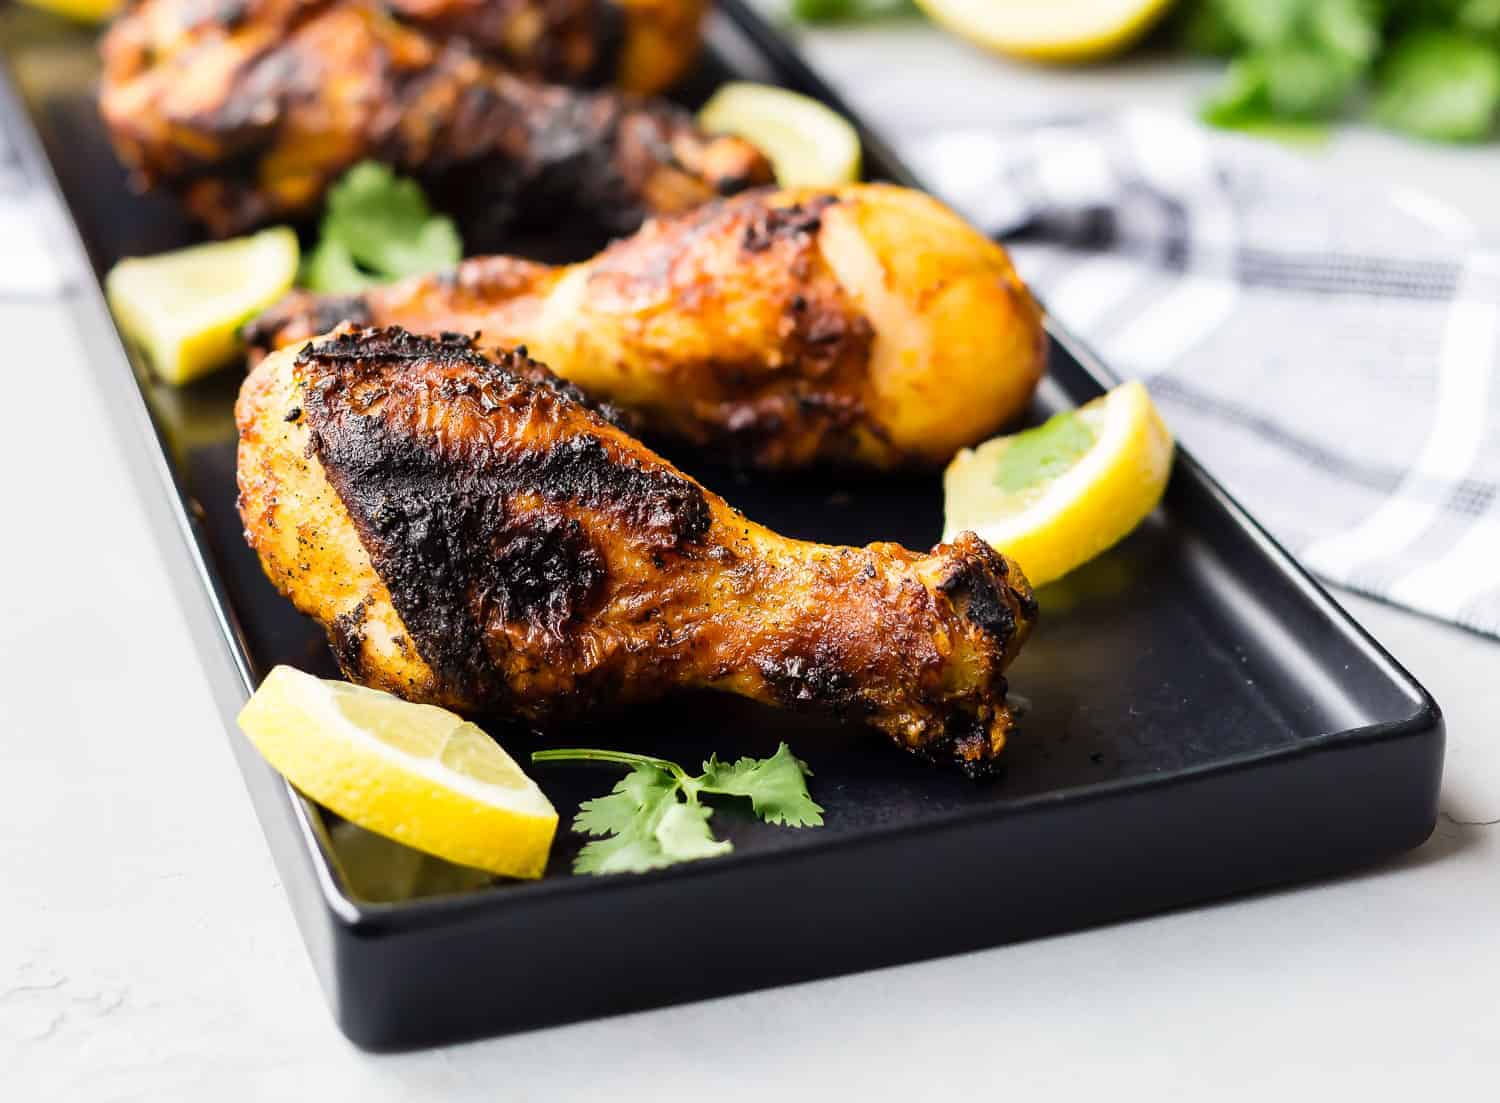 Grilled chicken drumsticks on a black platter with lemon slices and cilantro.